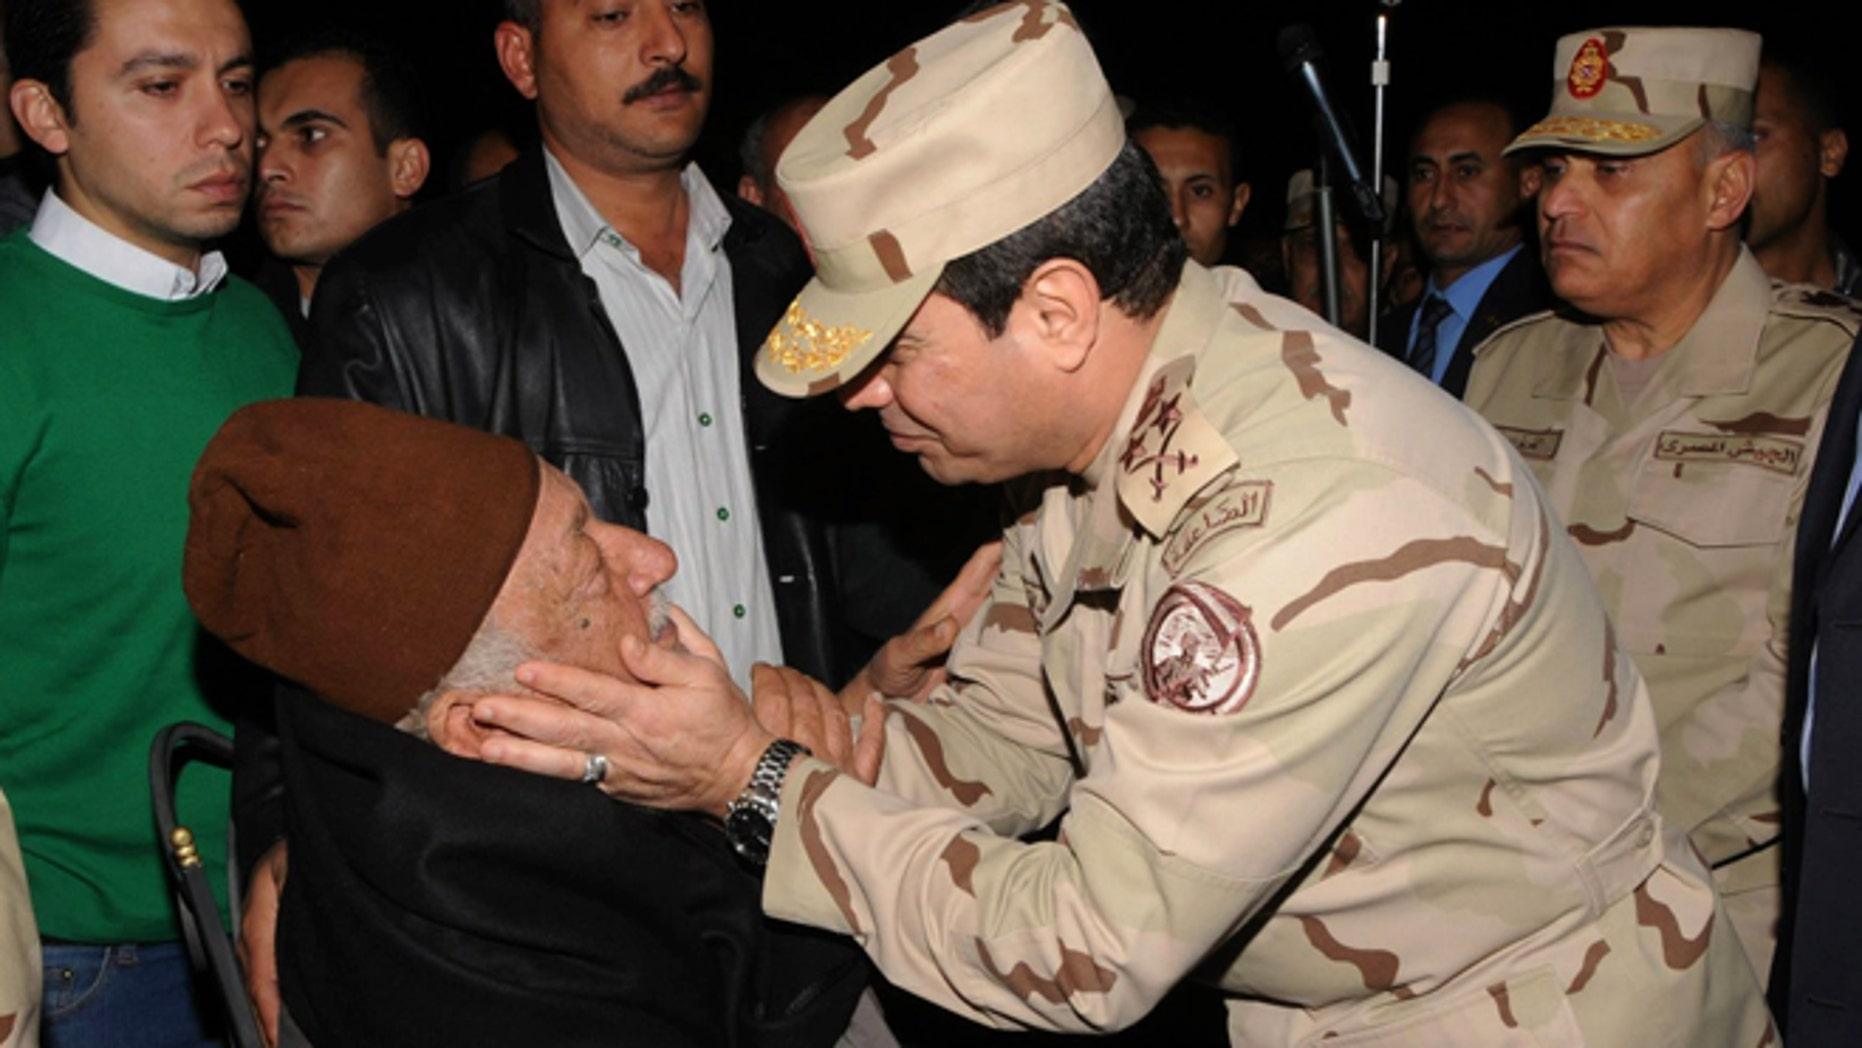 In this undated photo released by the Egyptian Defense Ministry, Defense Minister Gen. Abdel-Fattah el-Sissi consoles a man at a funeral for several military personnel who were killed when a  helicopter crashed in the Sinai Peninsula, at an undisclosed location in Egypt.